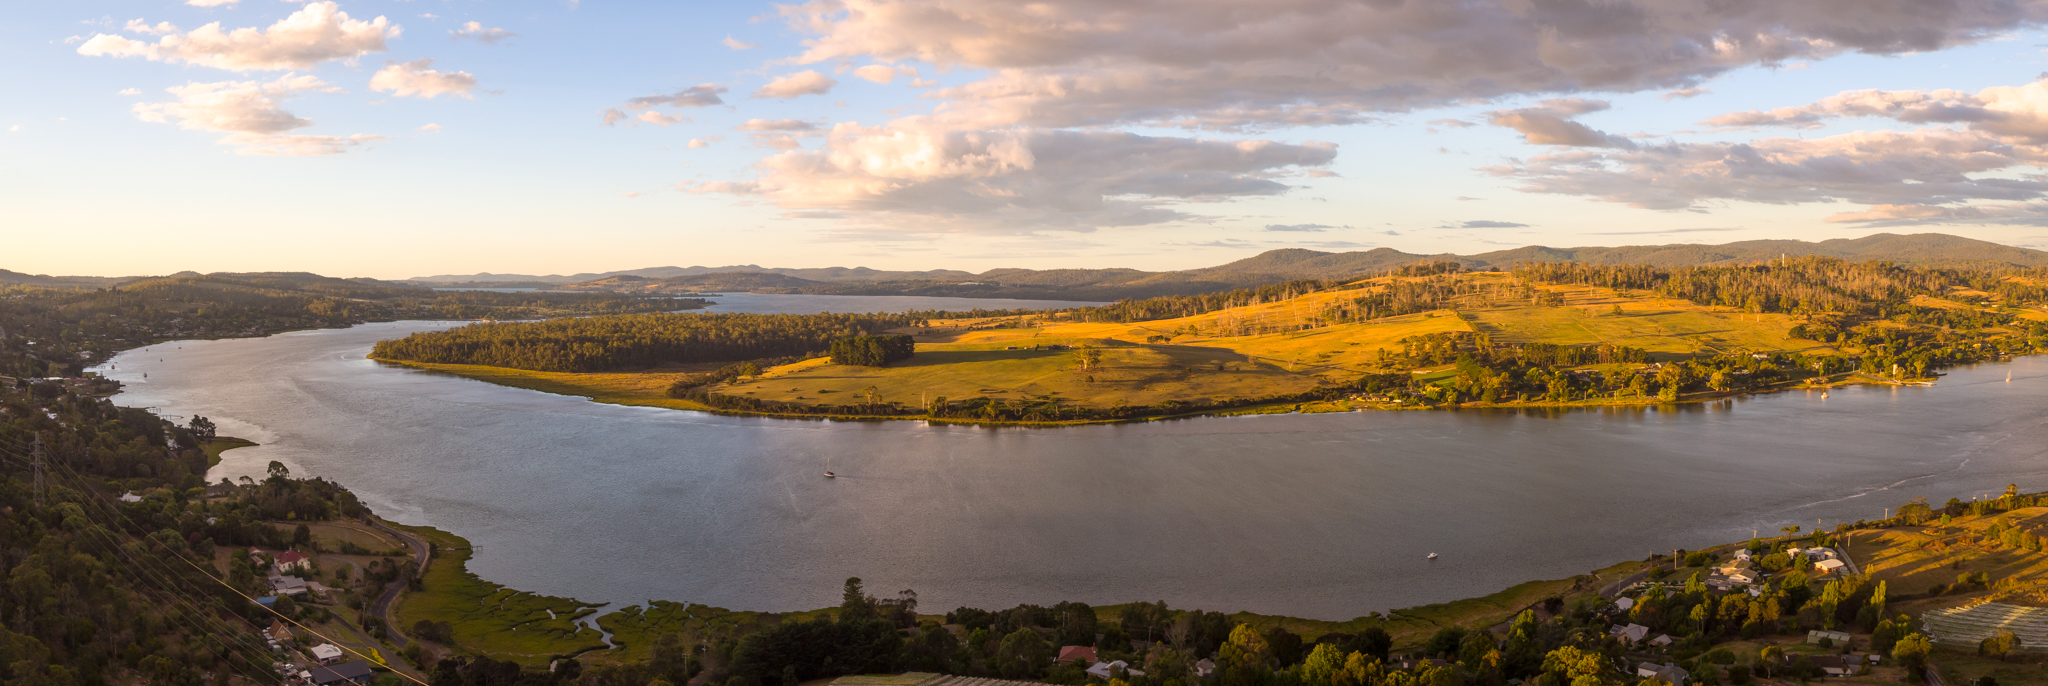 Tamar Valley Sunset